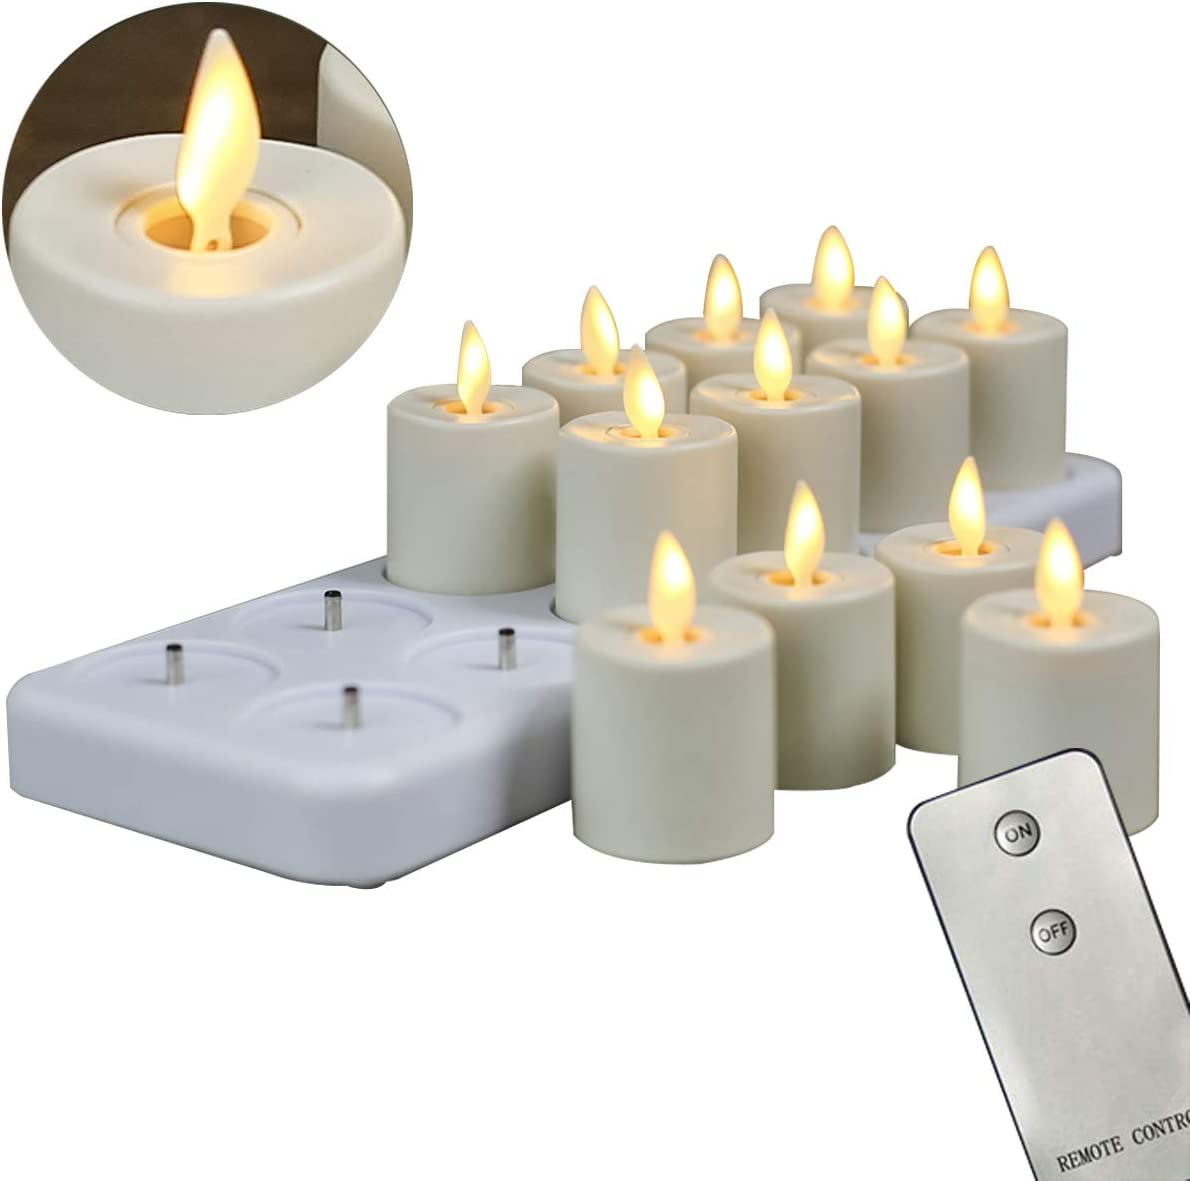 12 Pack Rechargeable Dancing Wick Candles, LED Flameless Remote Flickering Votive Candles With Timer Function 1.5 X 2.4 Inch per Candle